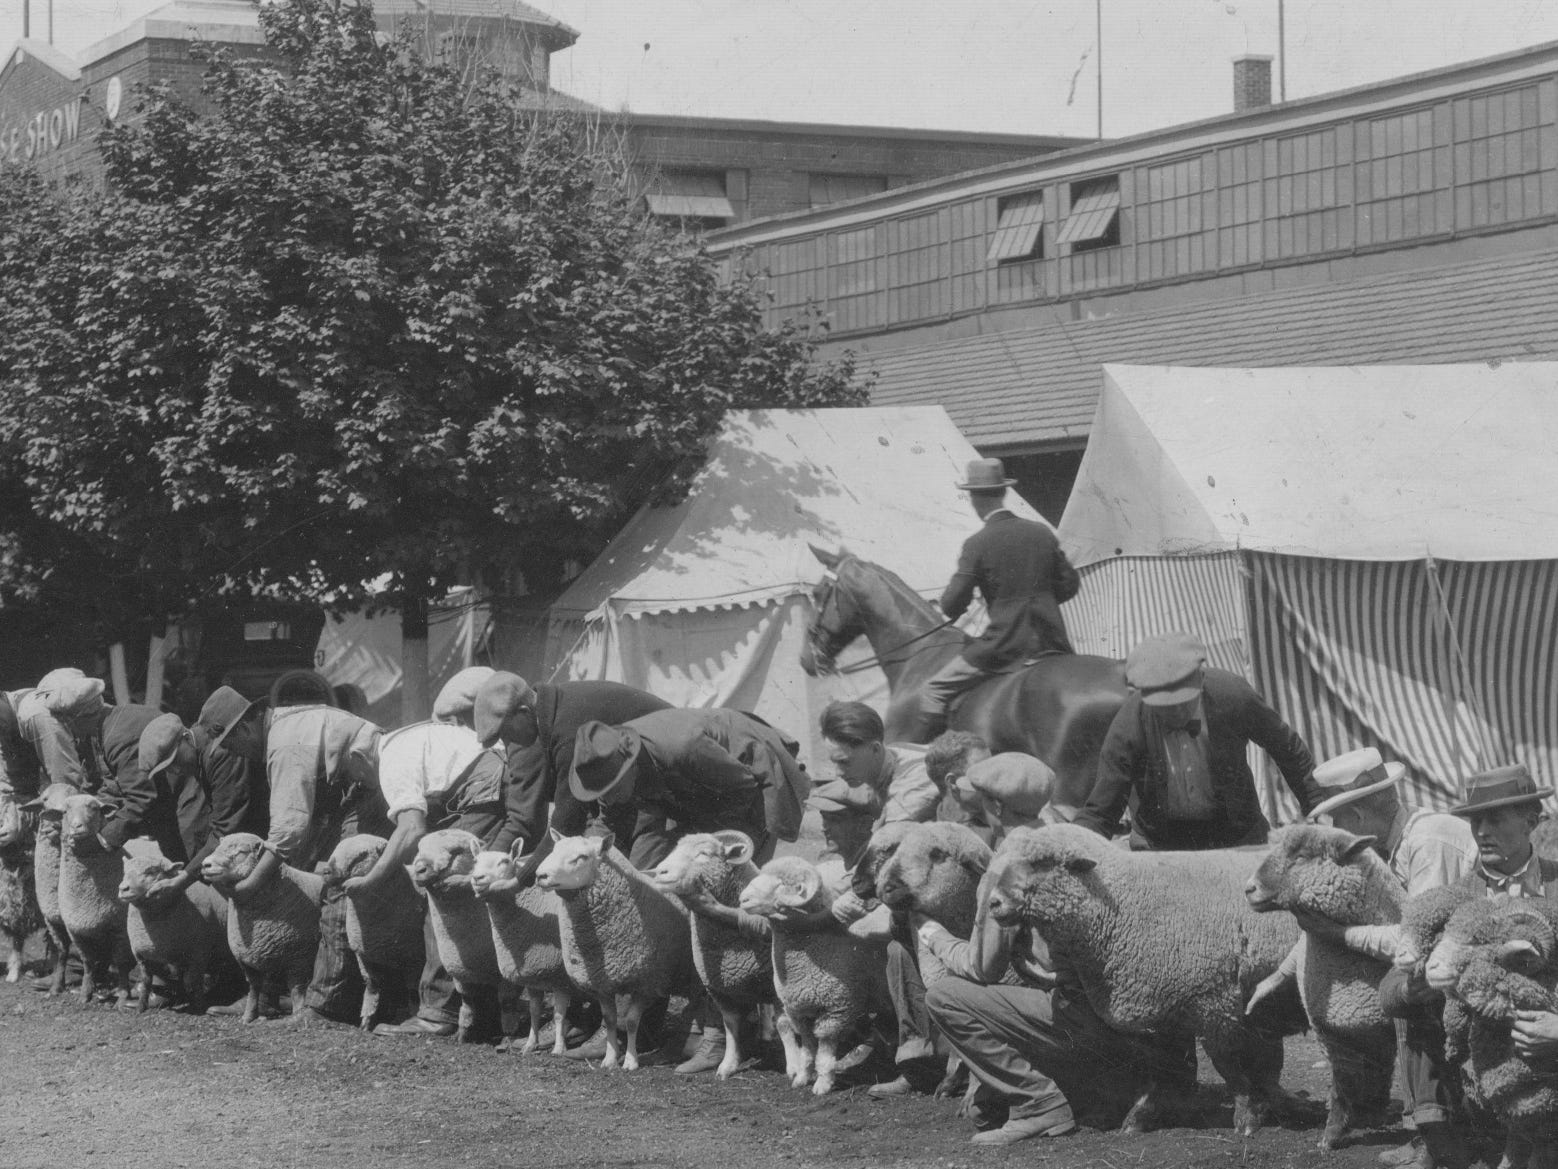 Ram showing at the 1927 Indiana State Fair.